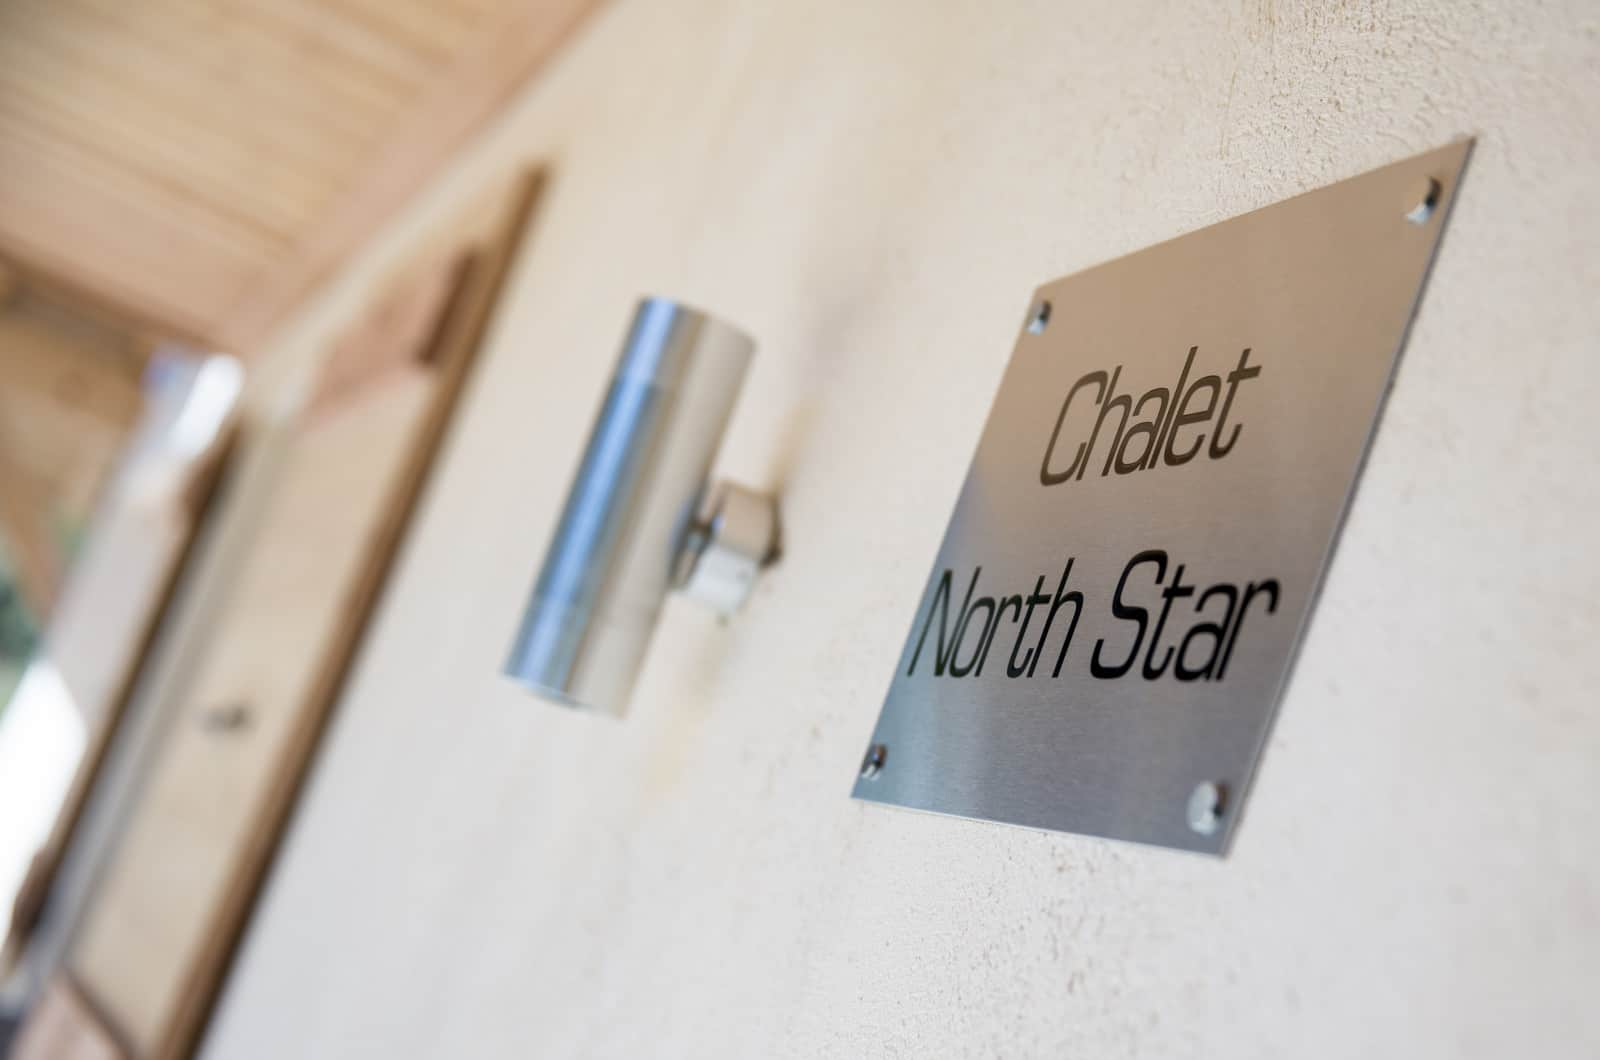 Chalet North Star